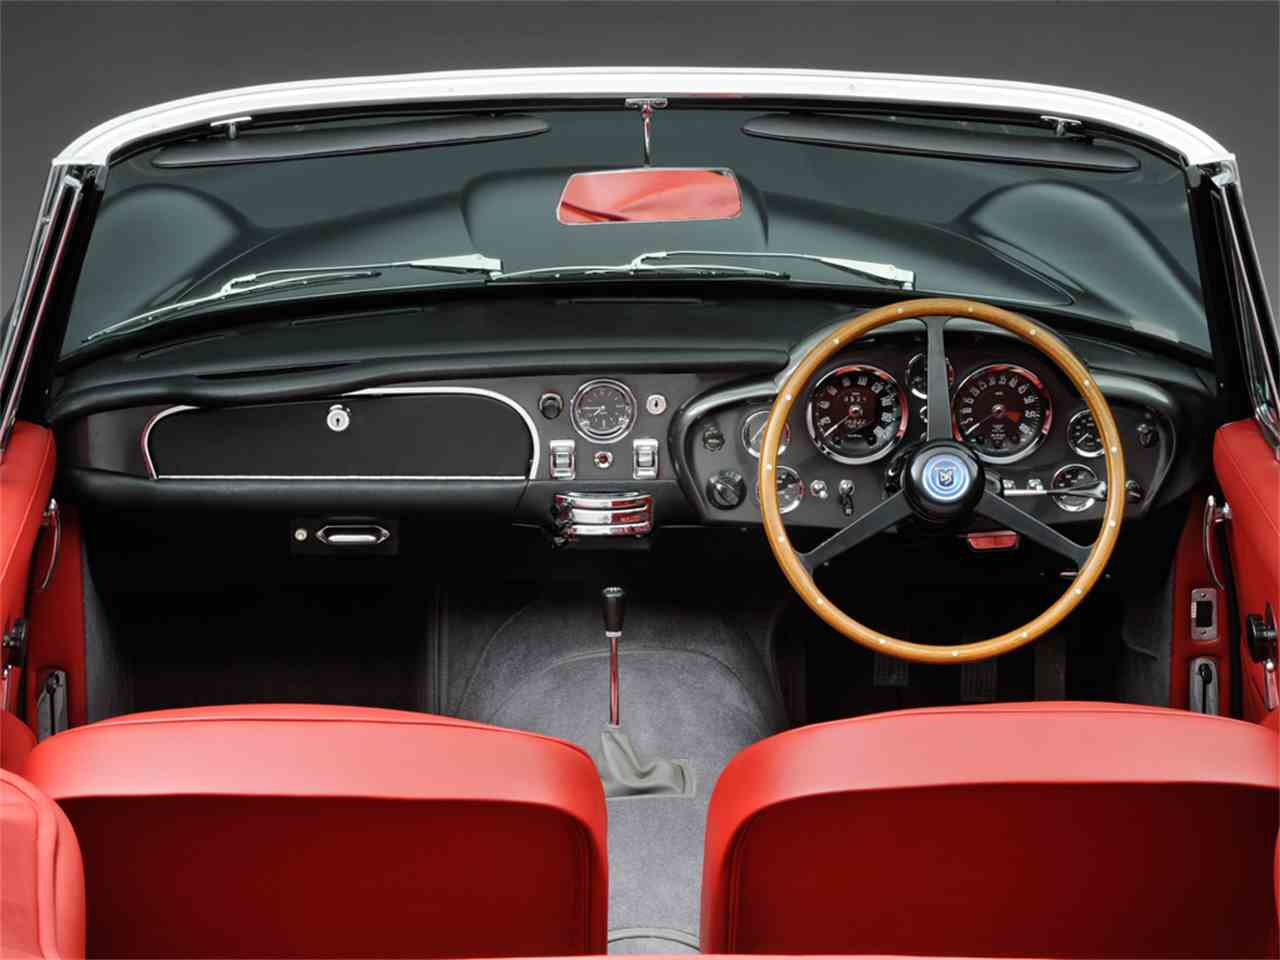 Large Picture of '67 Aston Martin DB6 MKI Vantage Volante located in  Offered by JD Classics LTD - IVCB